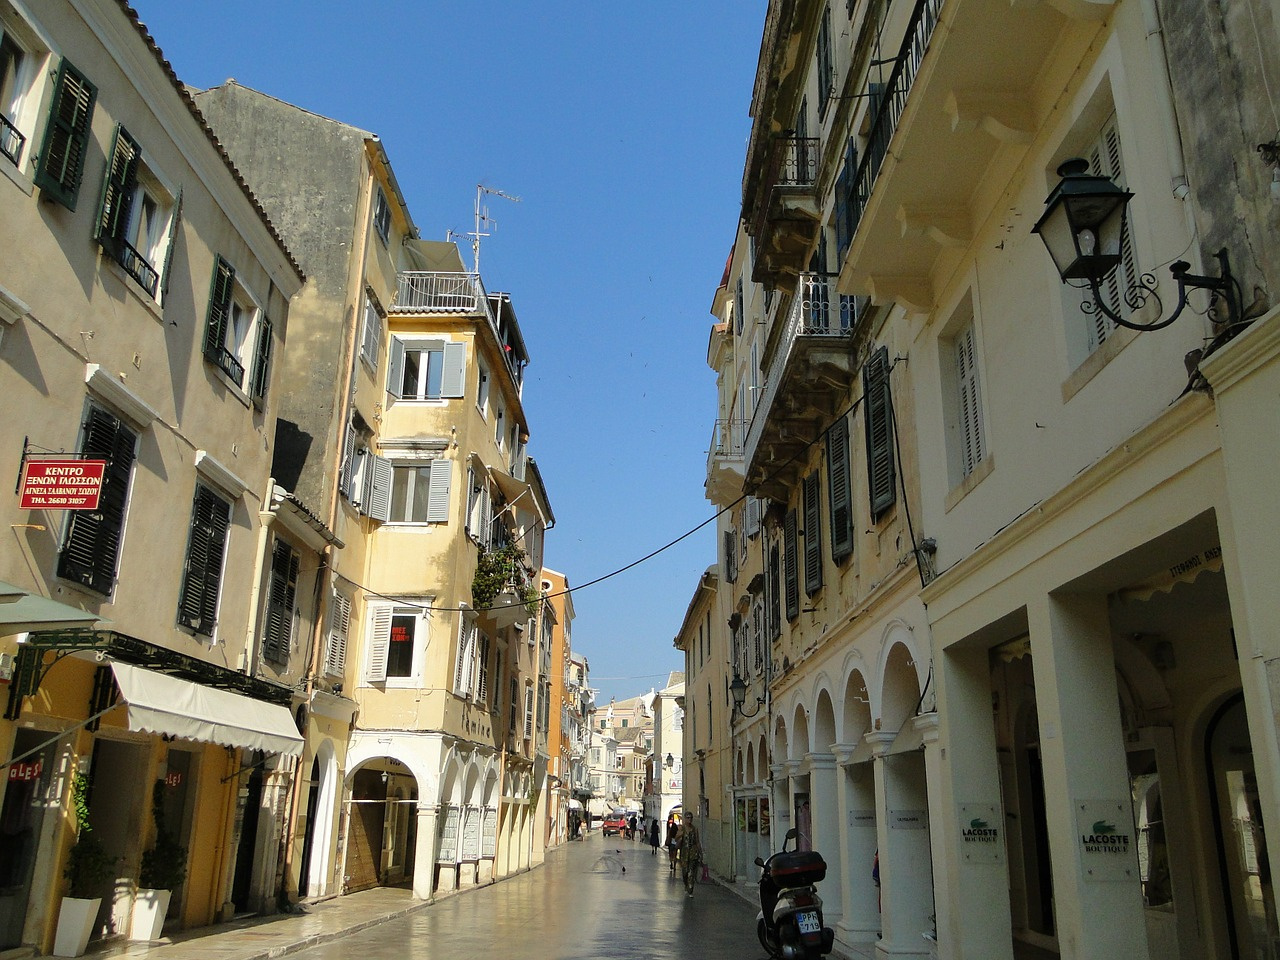 corfu,old town,facade,building,architecture,city,places of interest,kerkira,greece,pedestrian,pedestrian zone,road,venizianisch,stroll,holiday destination,tourism,free pictures, free photos, free images, royalty free, free illustrations, public domain